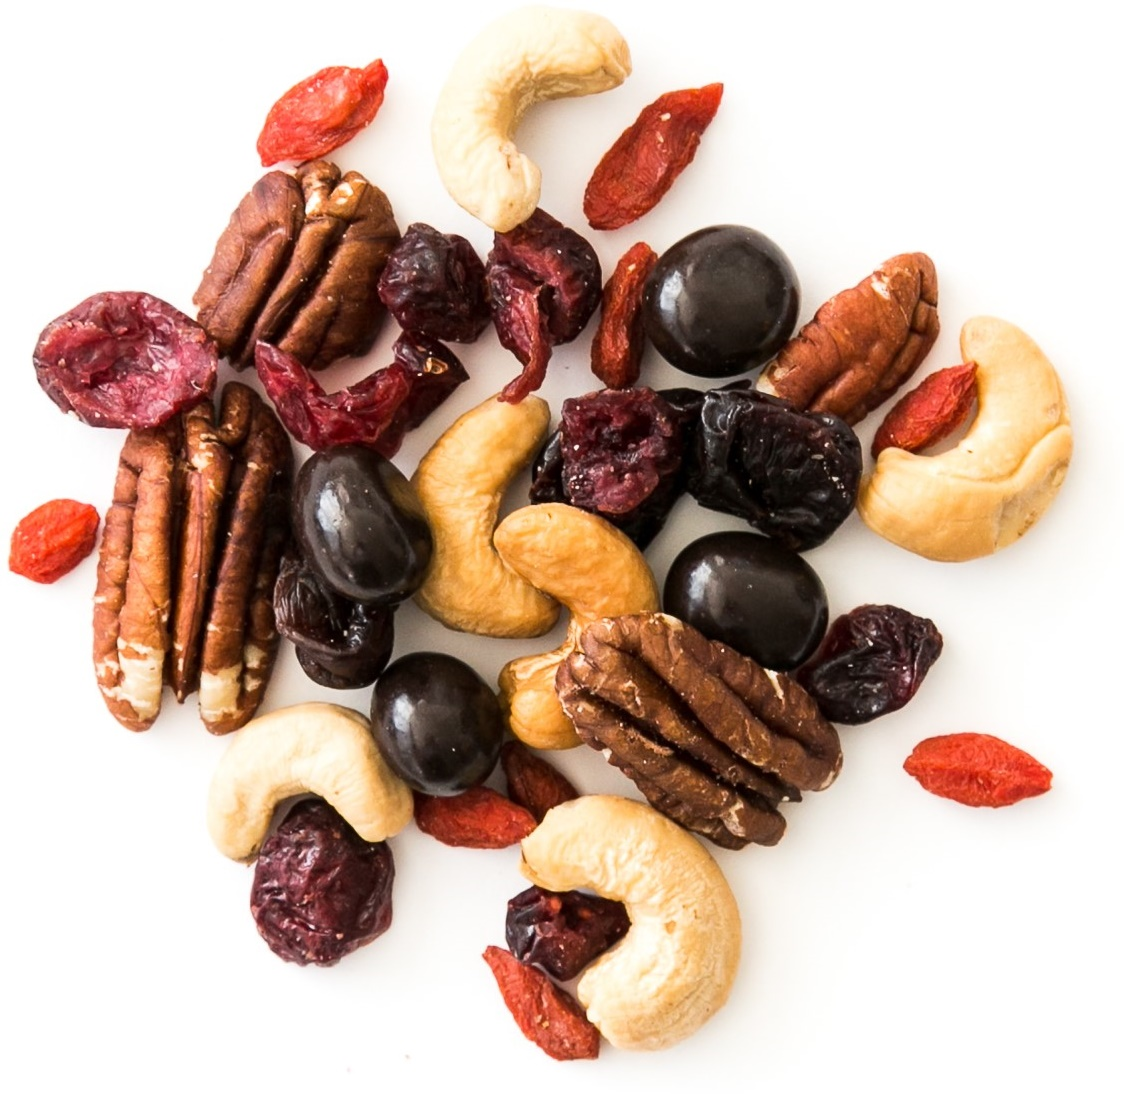 3pm Goji: roasted cashews, toasted pecans, chocolate covered coffee beans, goji berries, dried cherries